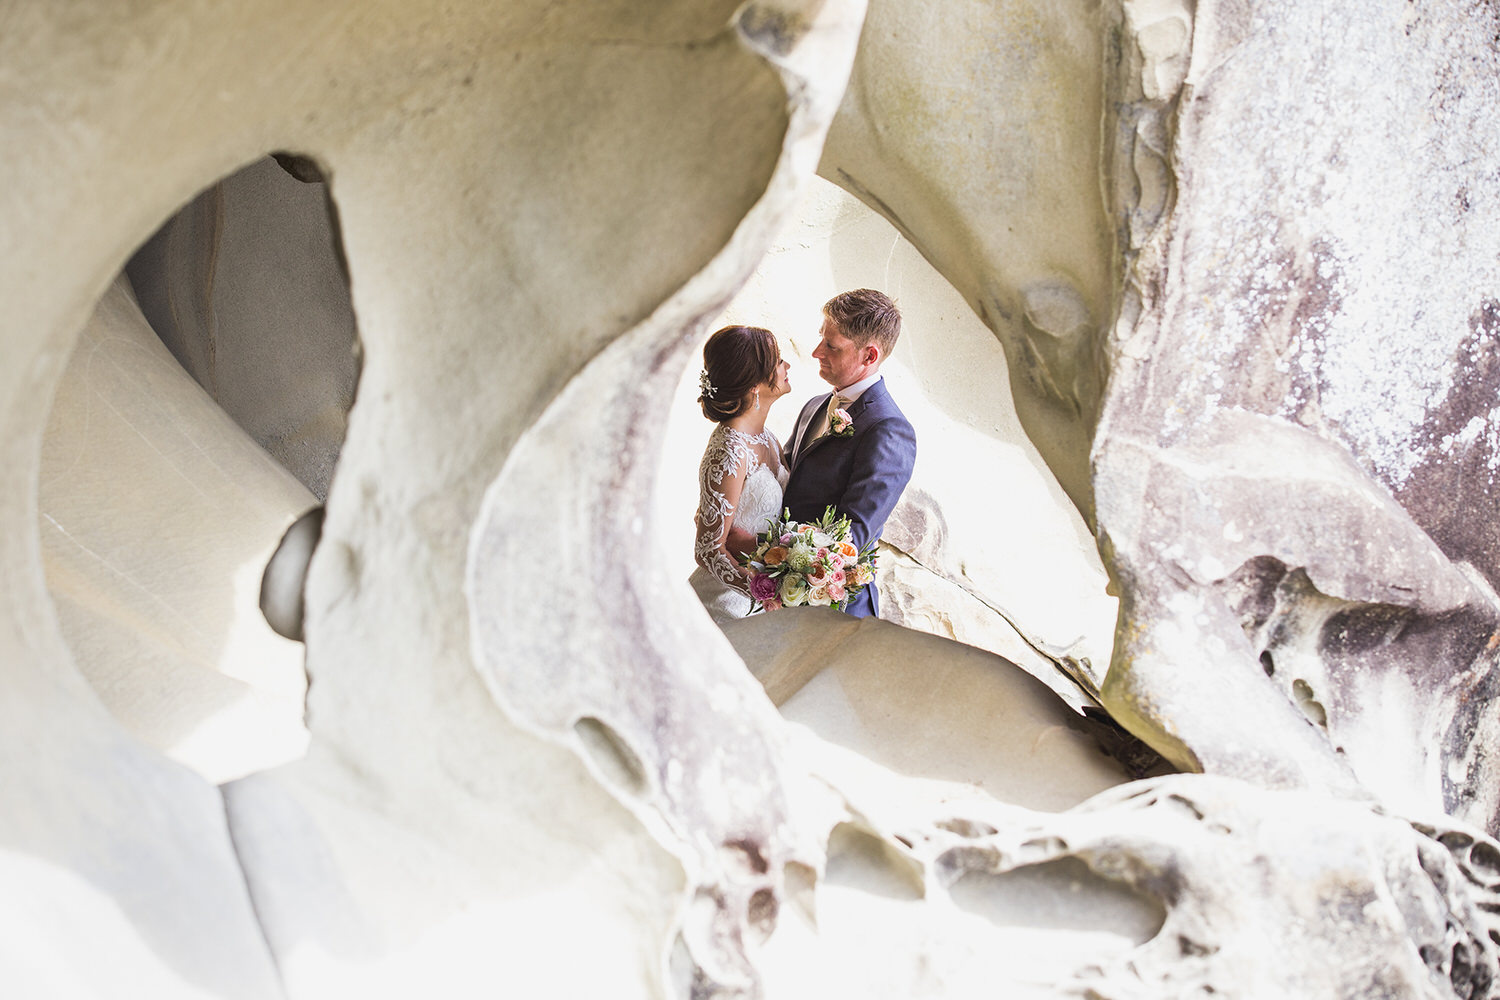 A bride and groom embrace at Retreat Cove on Galiano Island